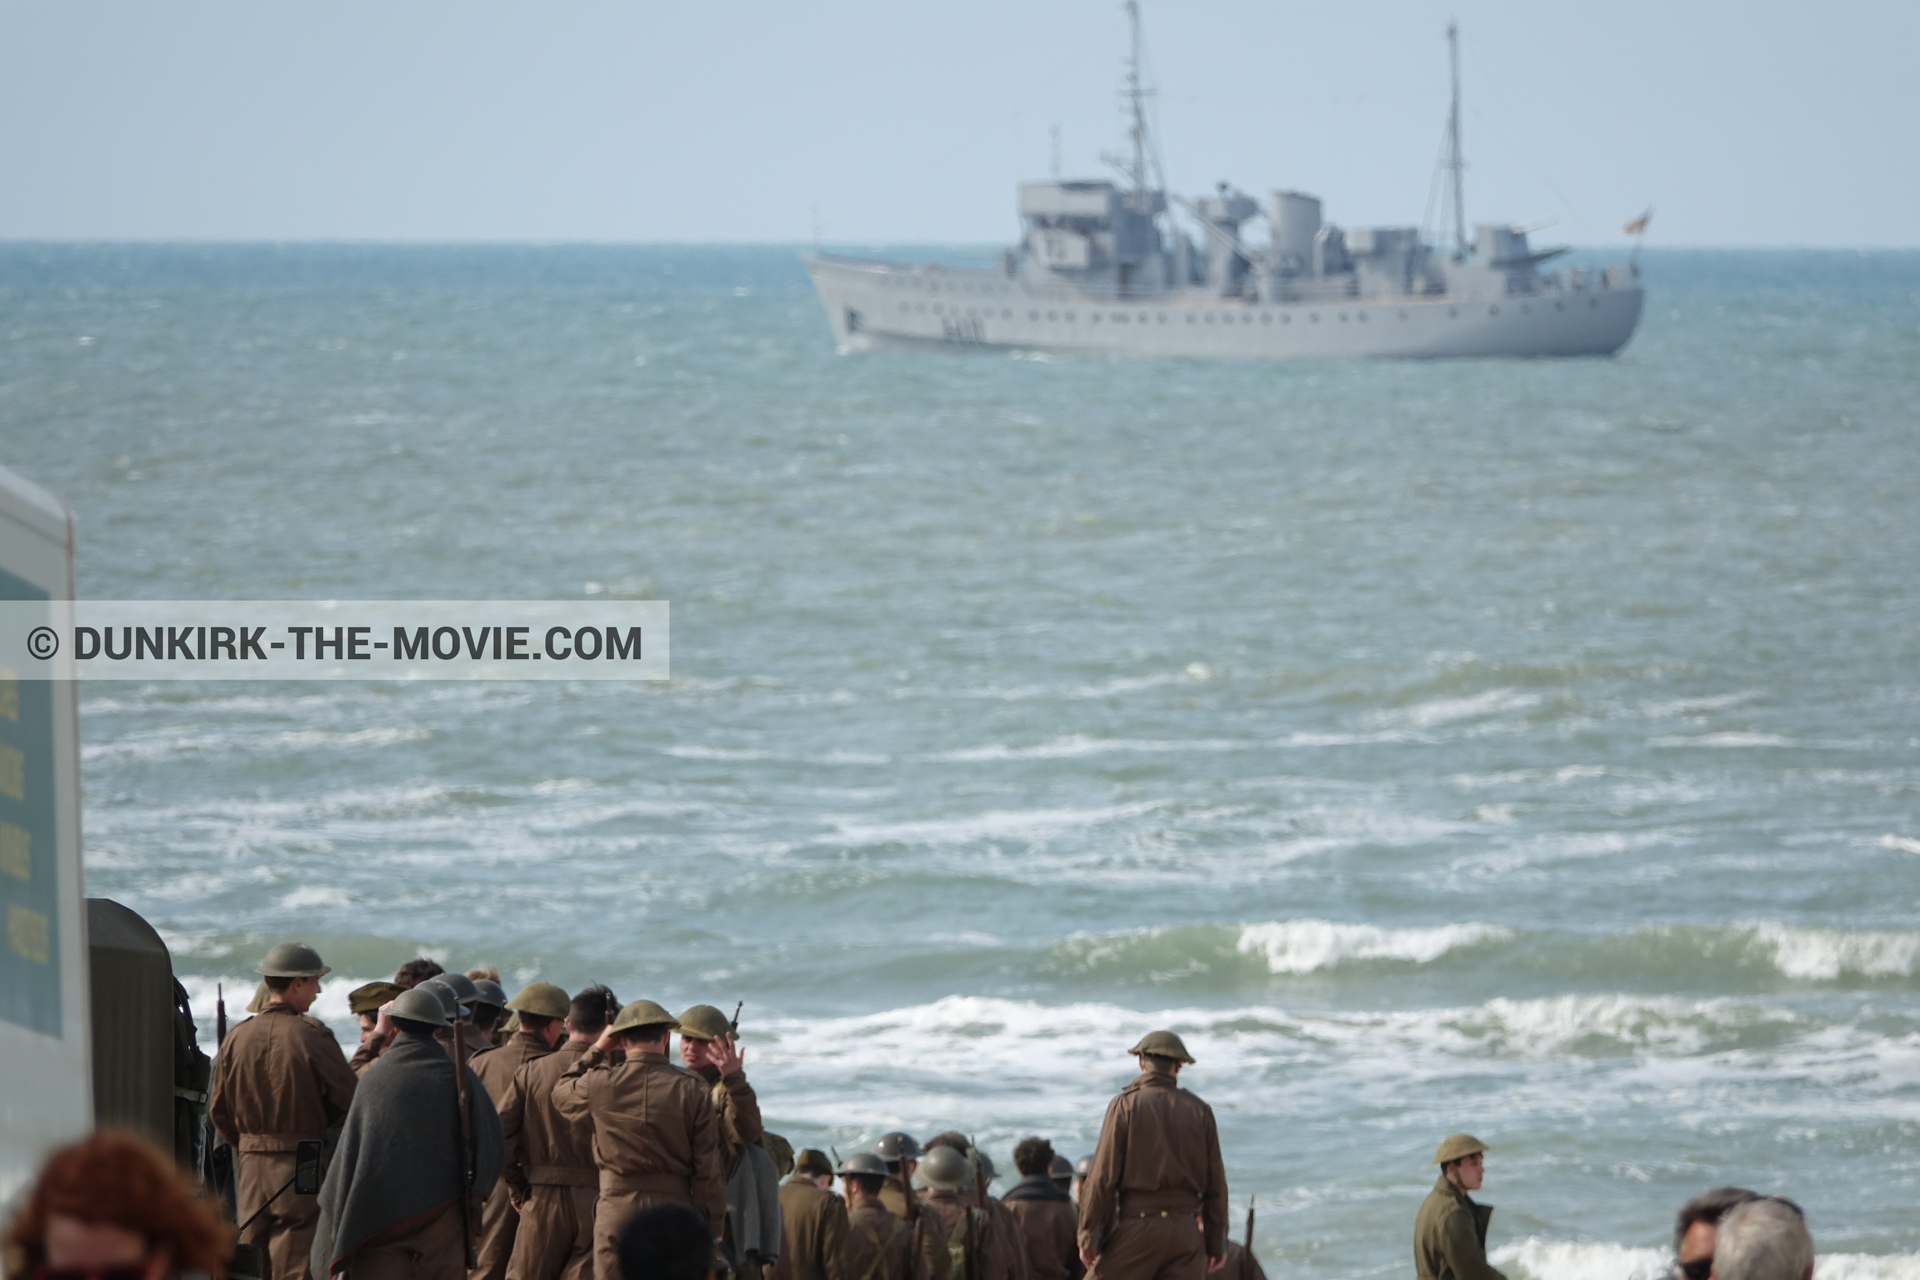 Picture with boat, supernumeraries, rough sea,  from behind the scene of the Dunkirk movie by Nolan